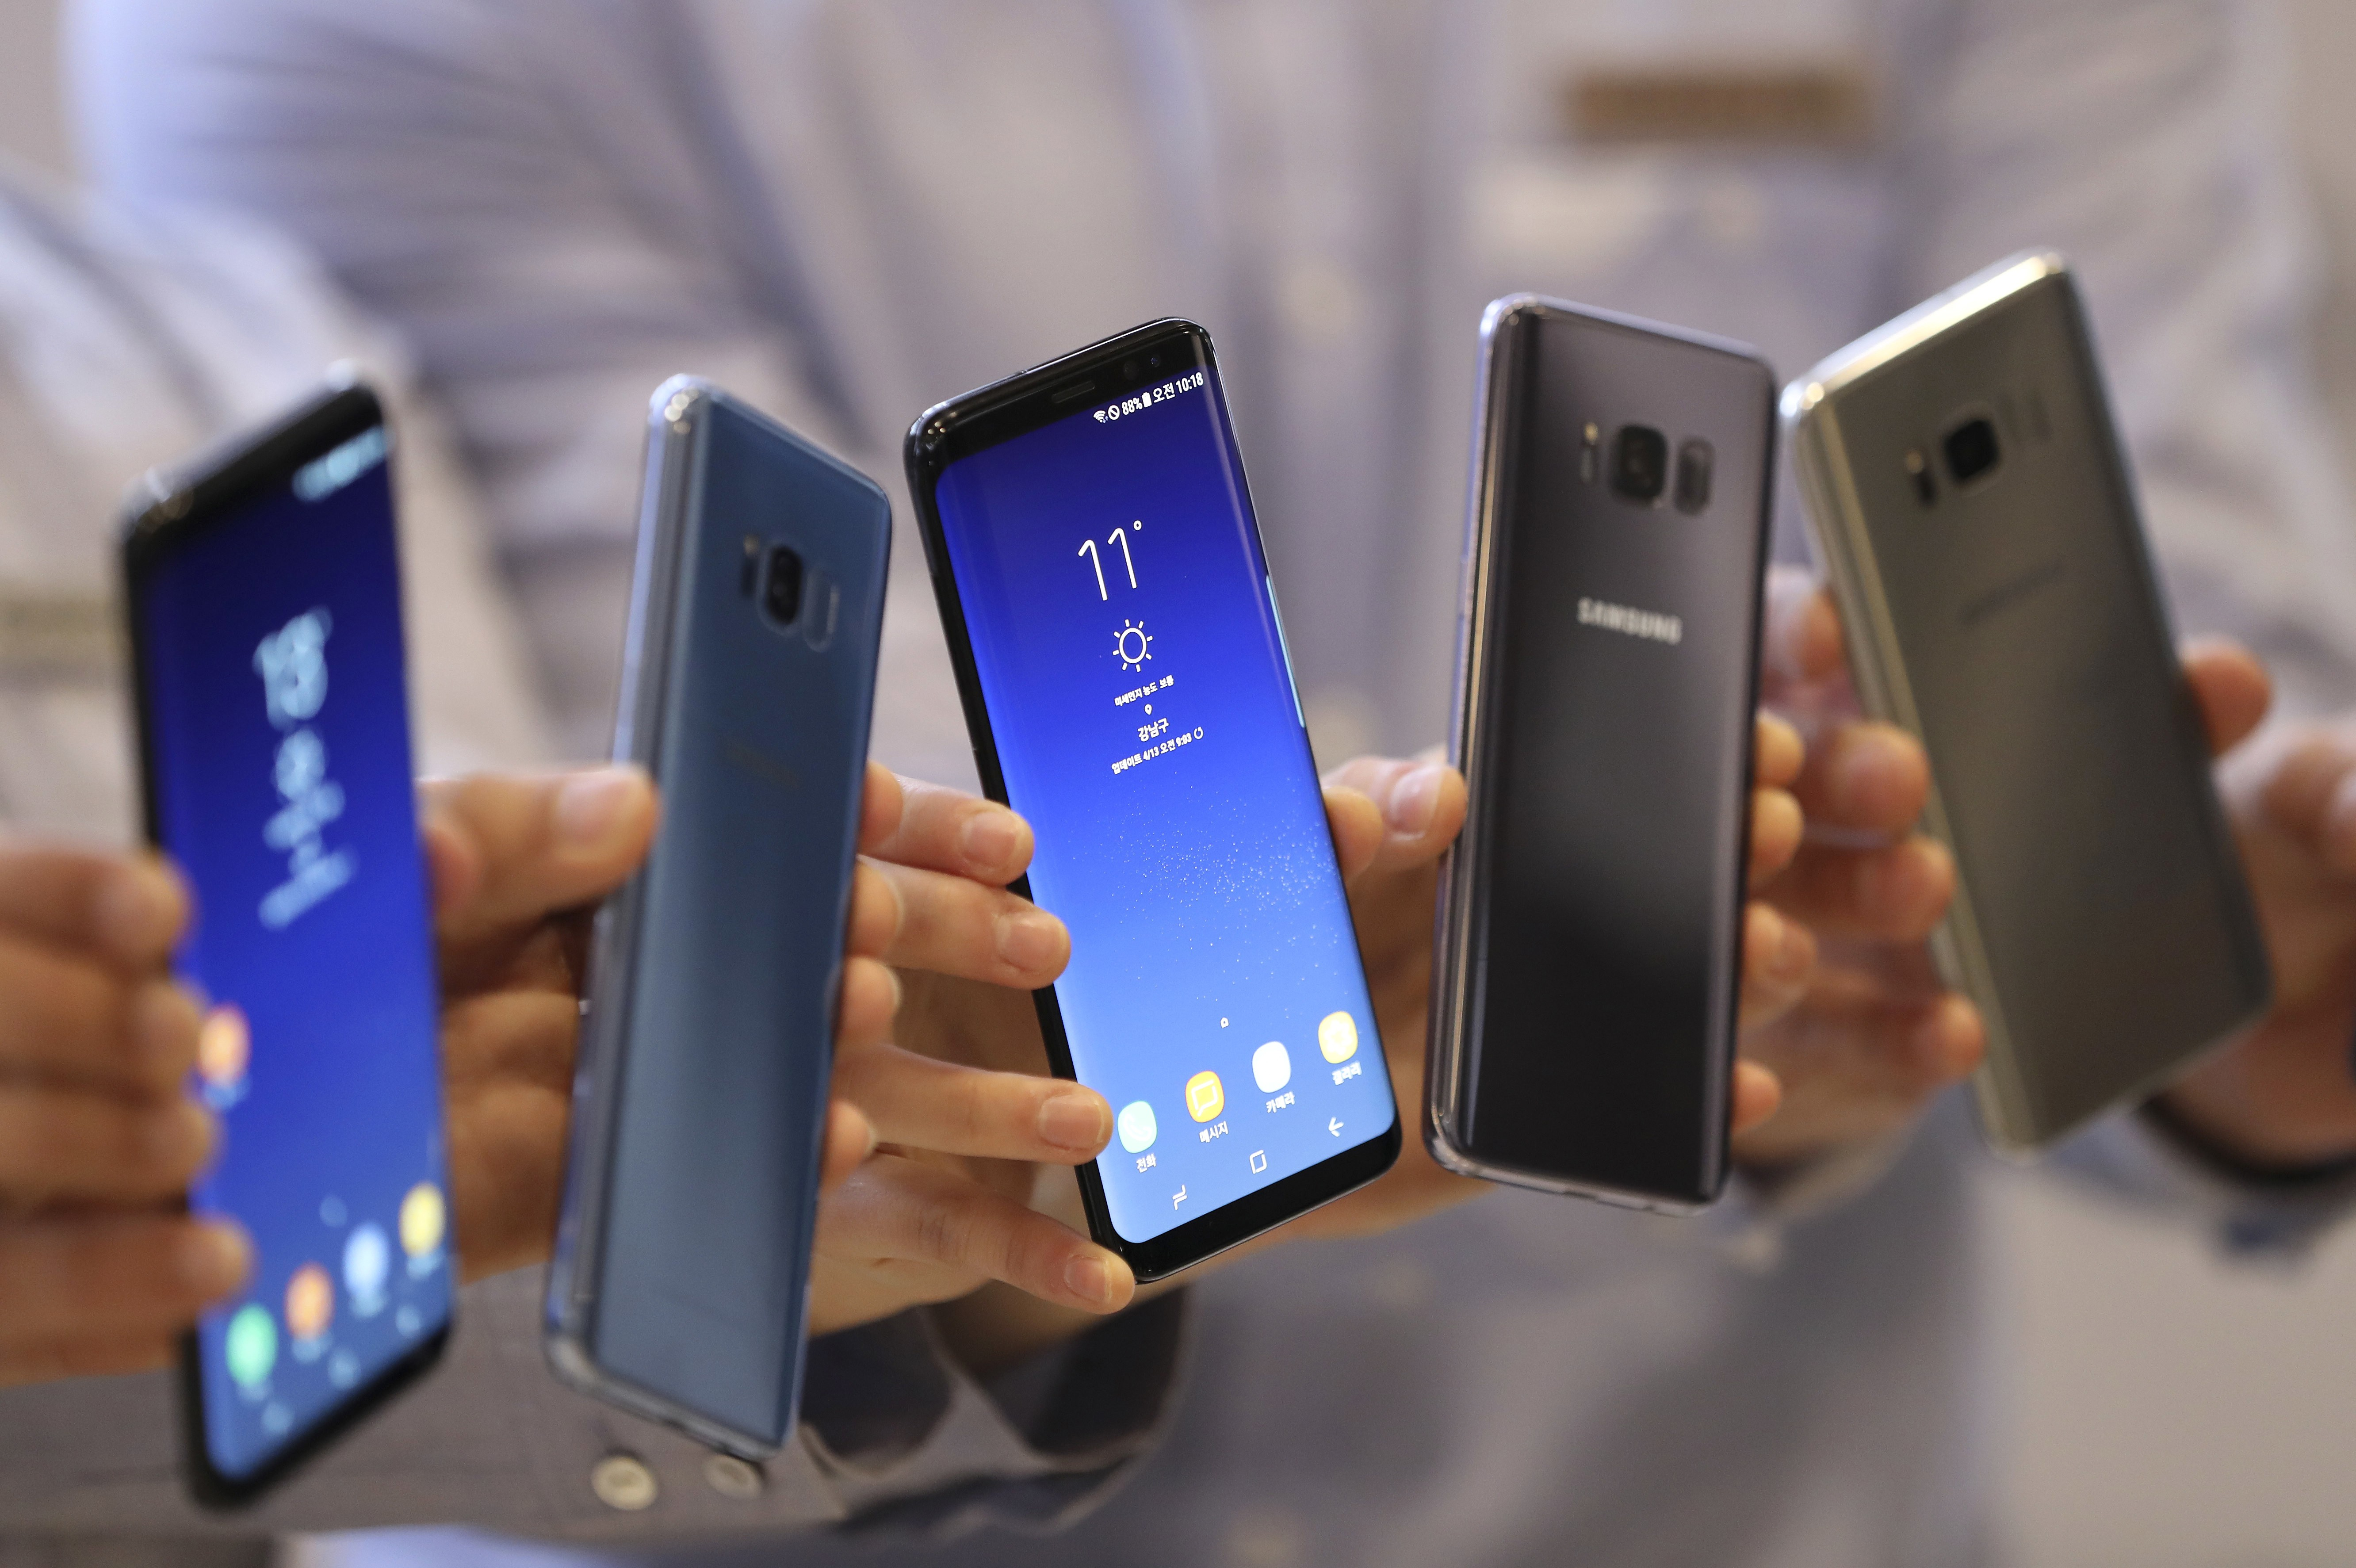 Samsung Galaxy S8 full review: at HK$5,698 it's pricey but there's a